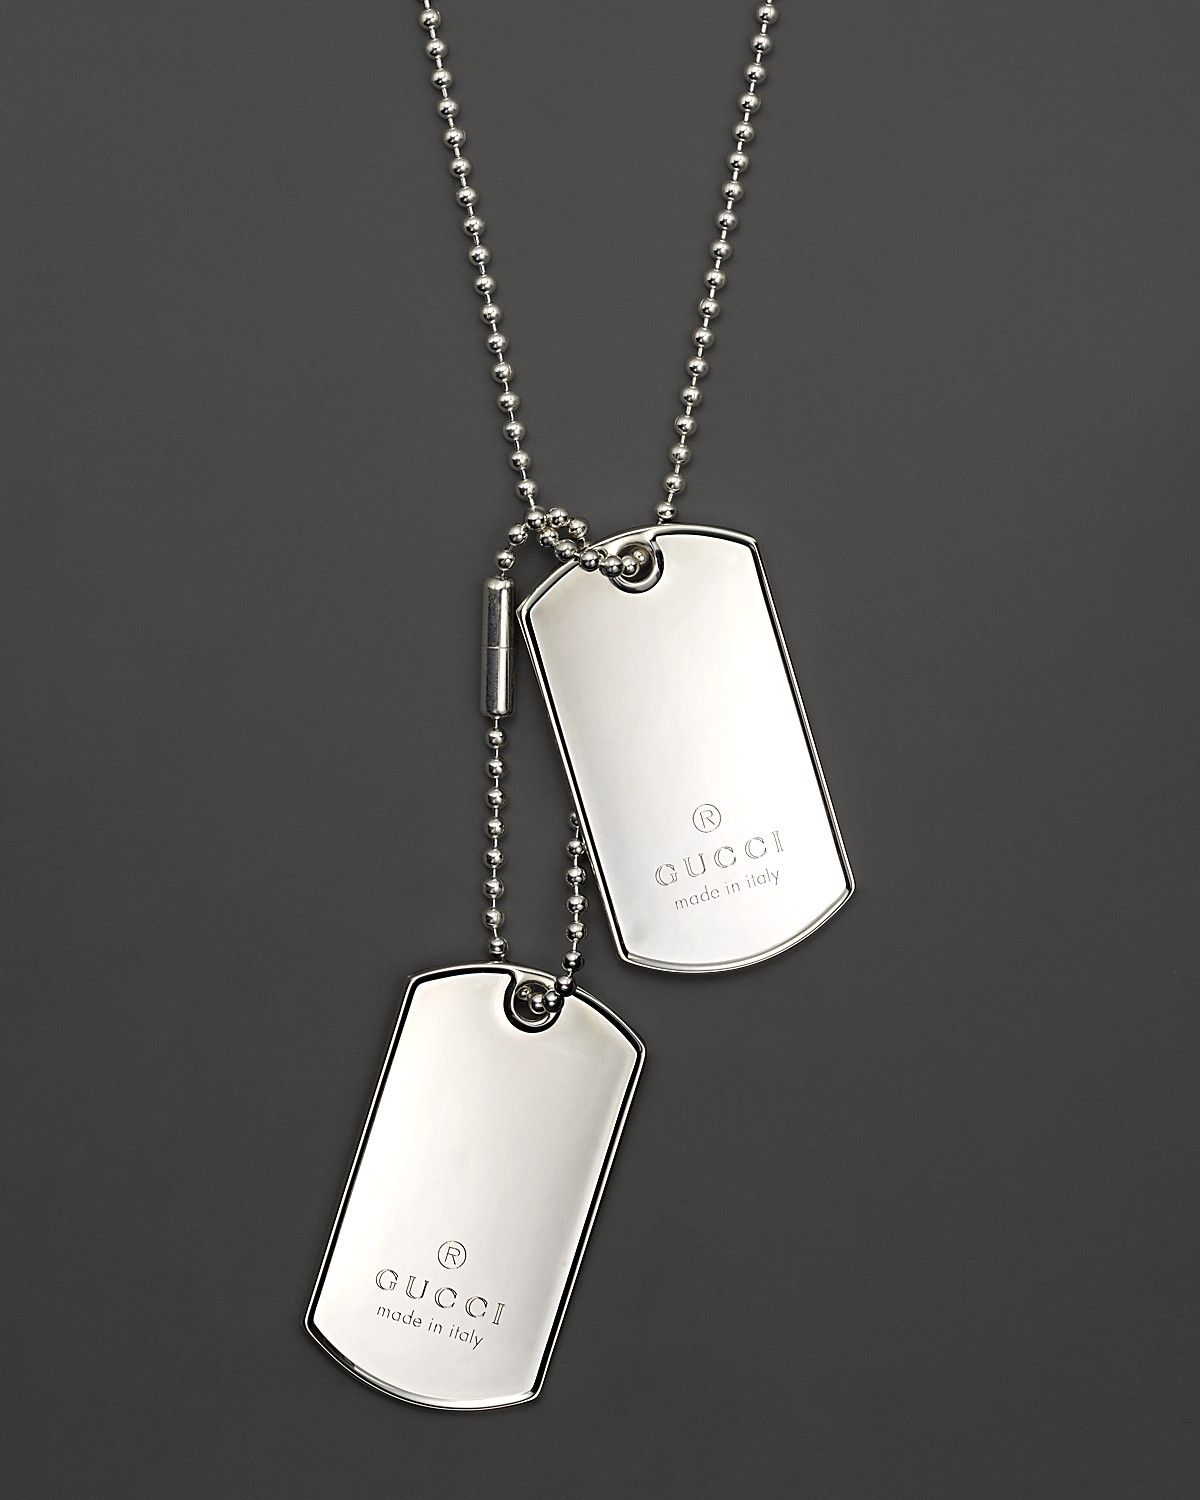 98bb64bae009 Gucci Dogtag Necklace in Sterling Silver, 23